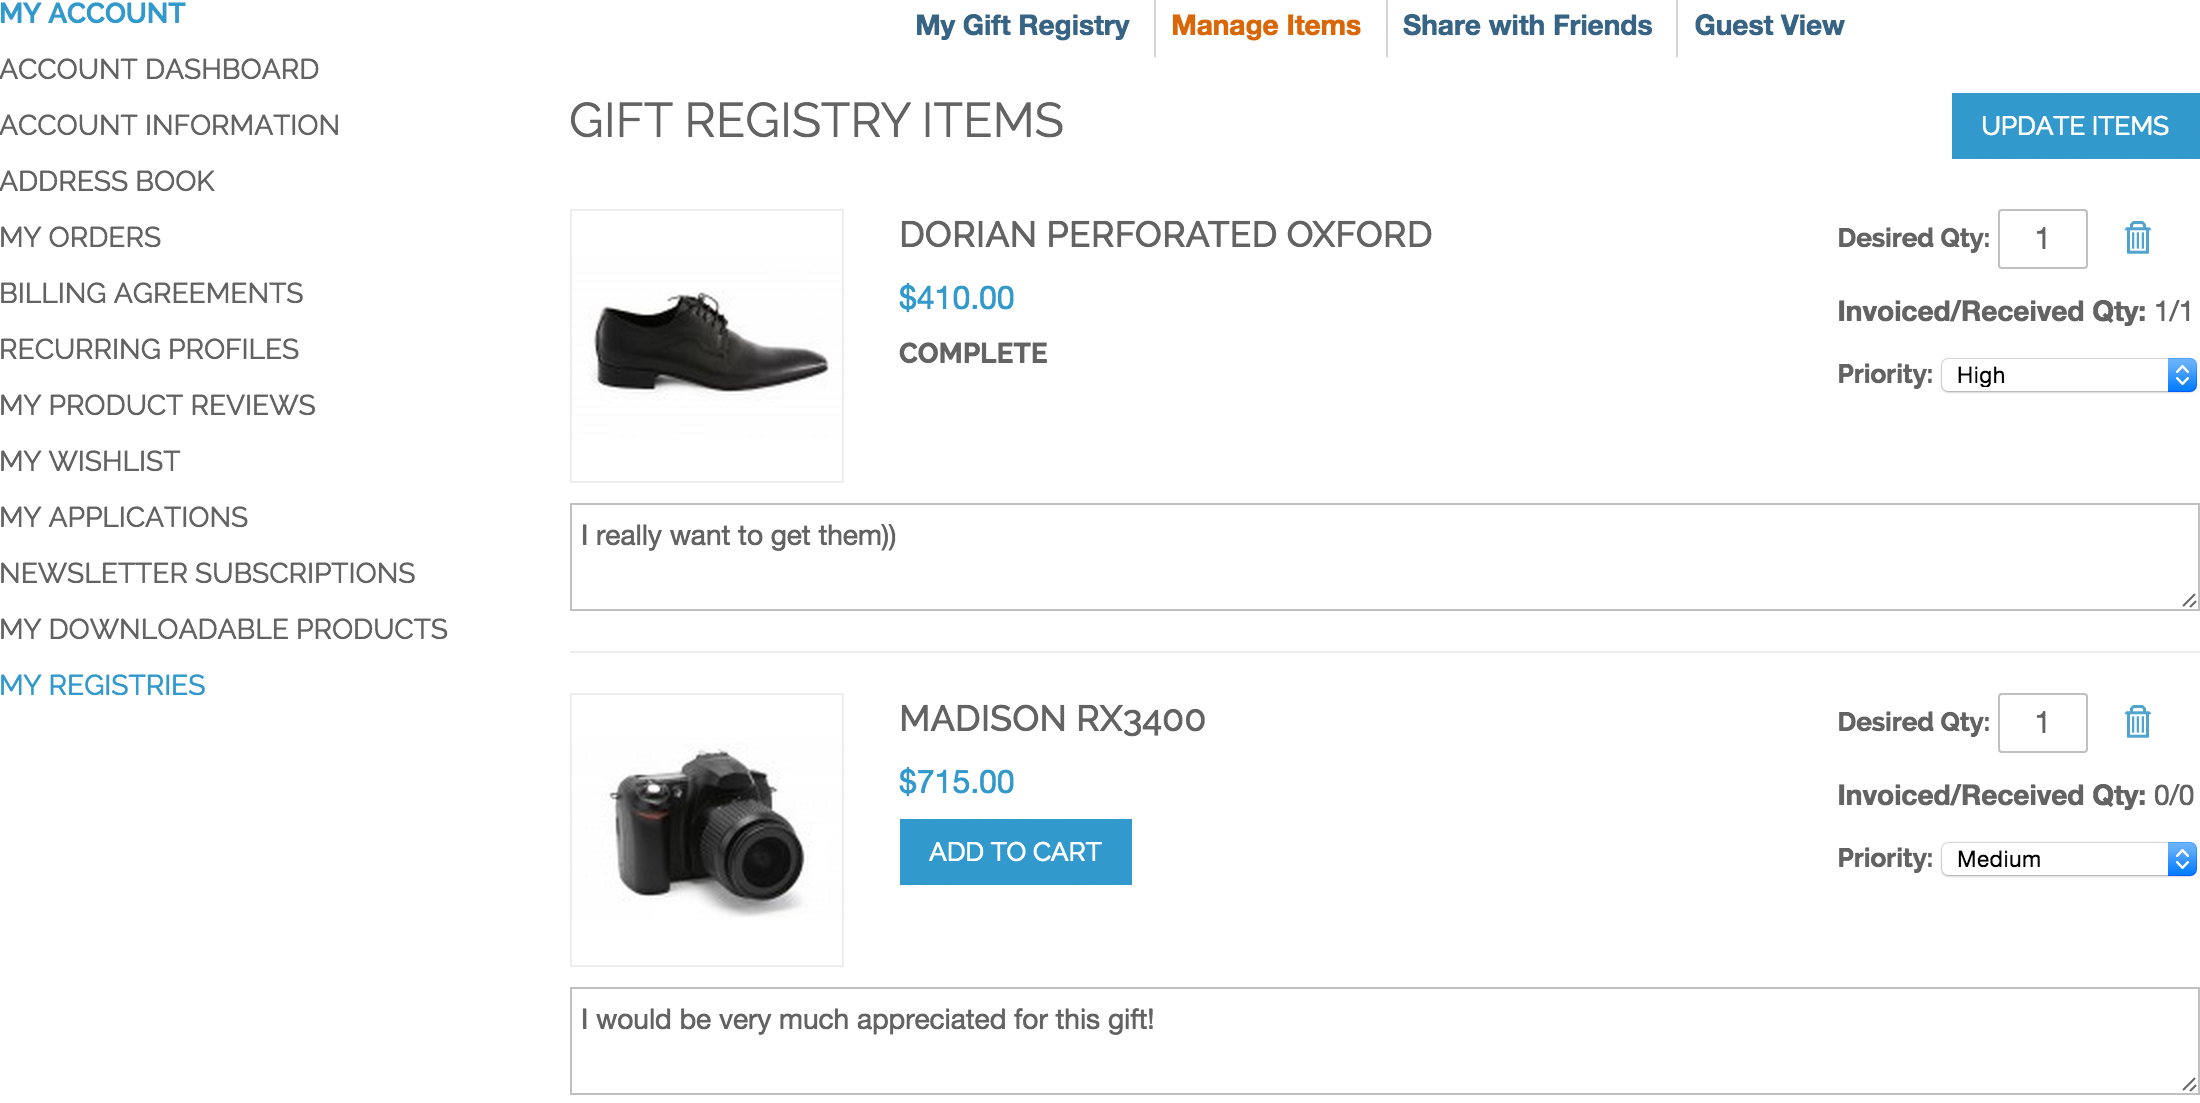 Manage Items -  Gift Registry